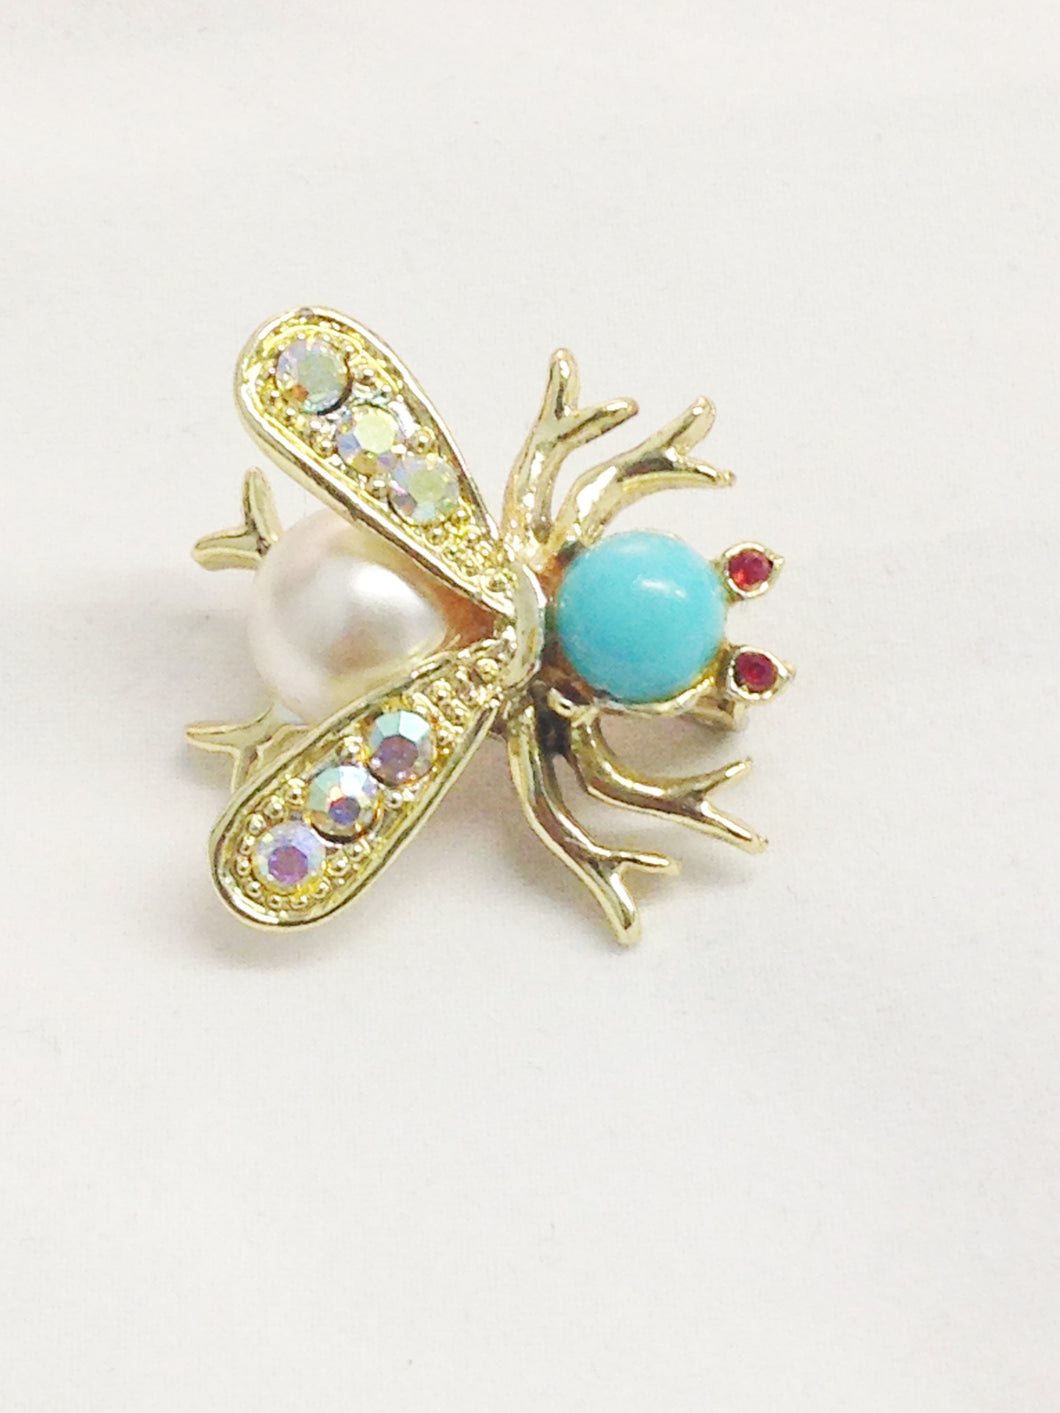 Bee Insect Gold Tone Rhinestone Brooch Pin www.hersandhistreasures.com/collections/vintage-jewelry